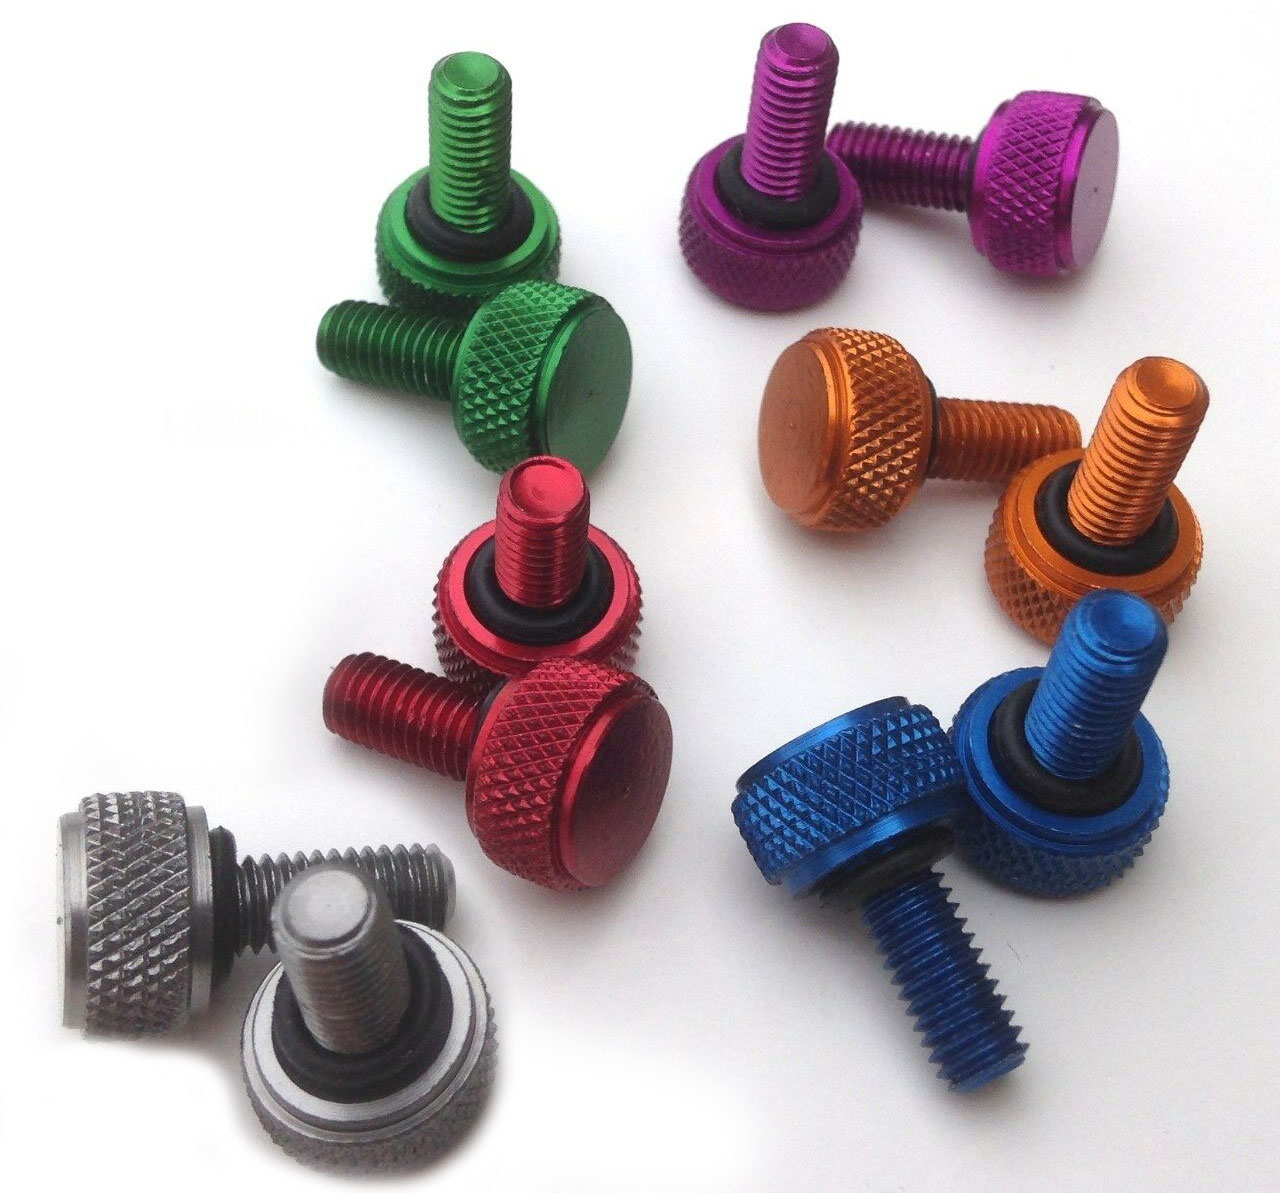 Beadlock Screw 5mm - Colored |721335 | BMI Karts And Parts